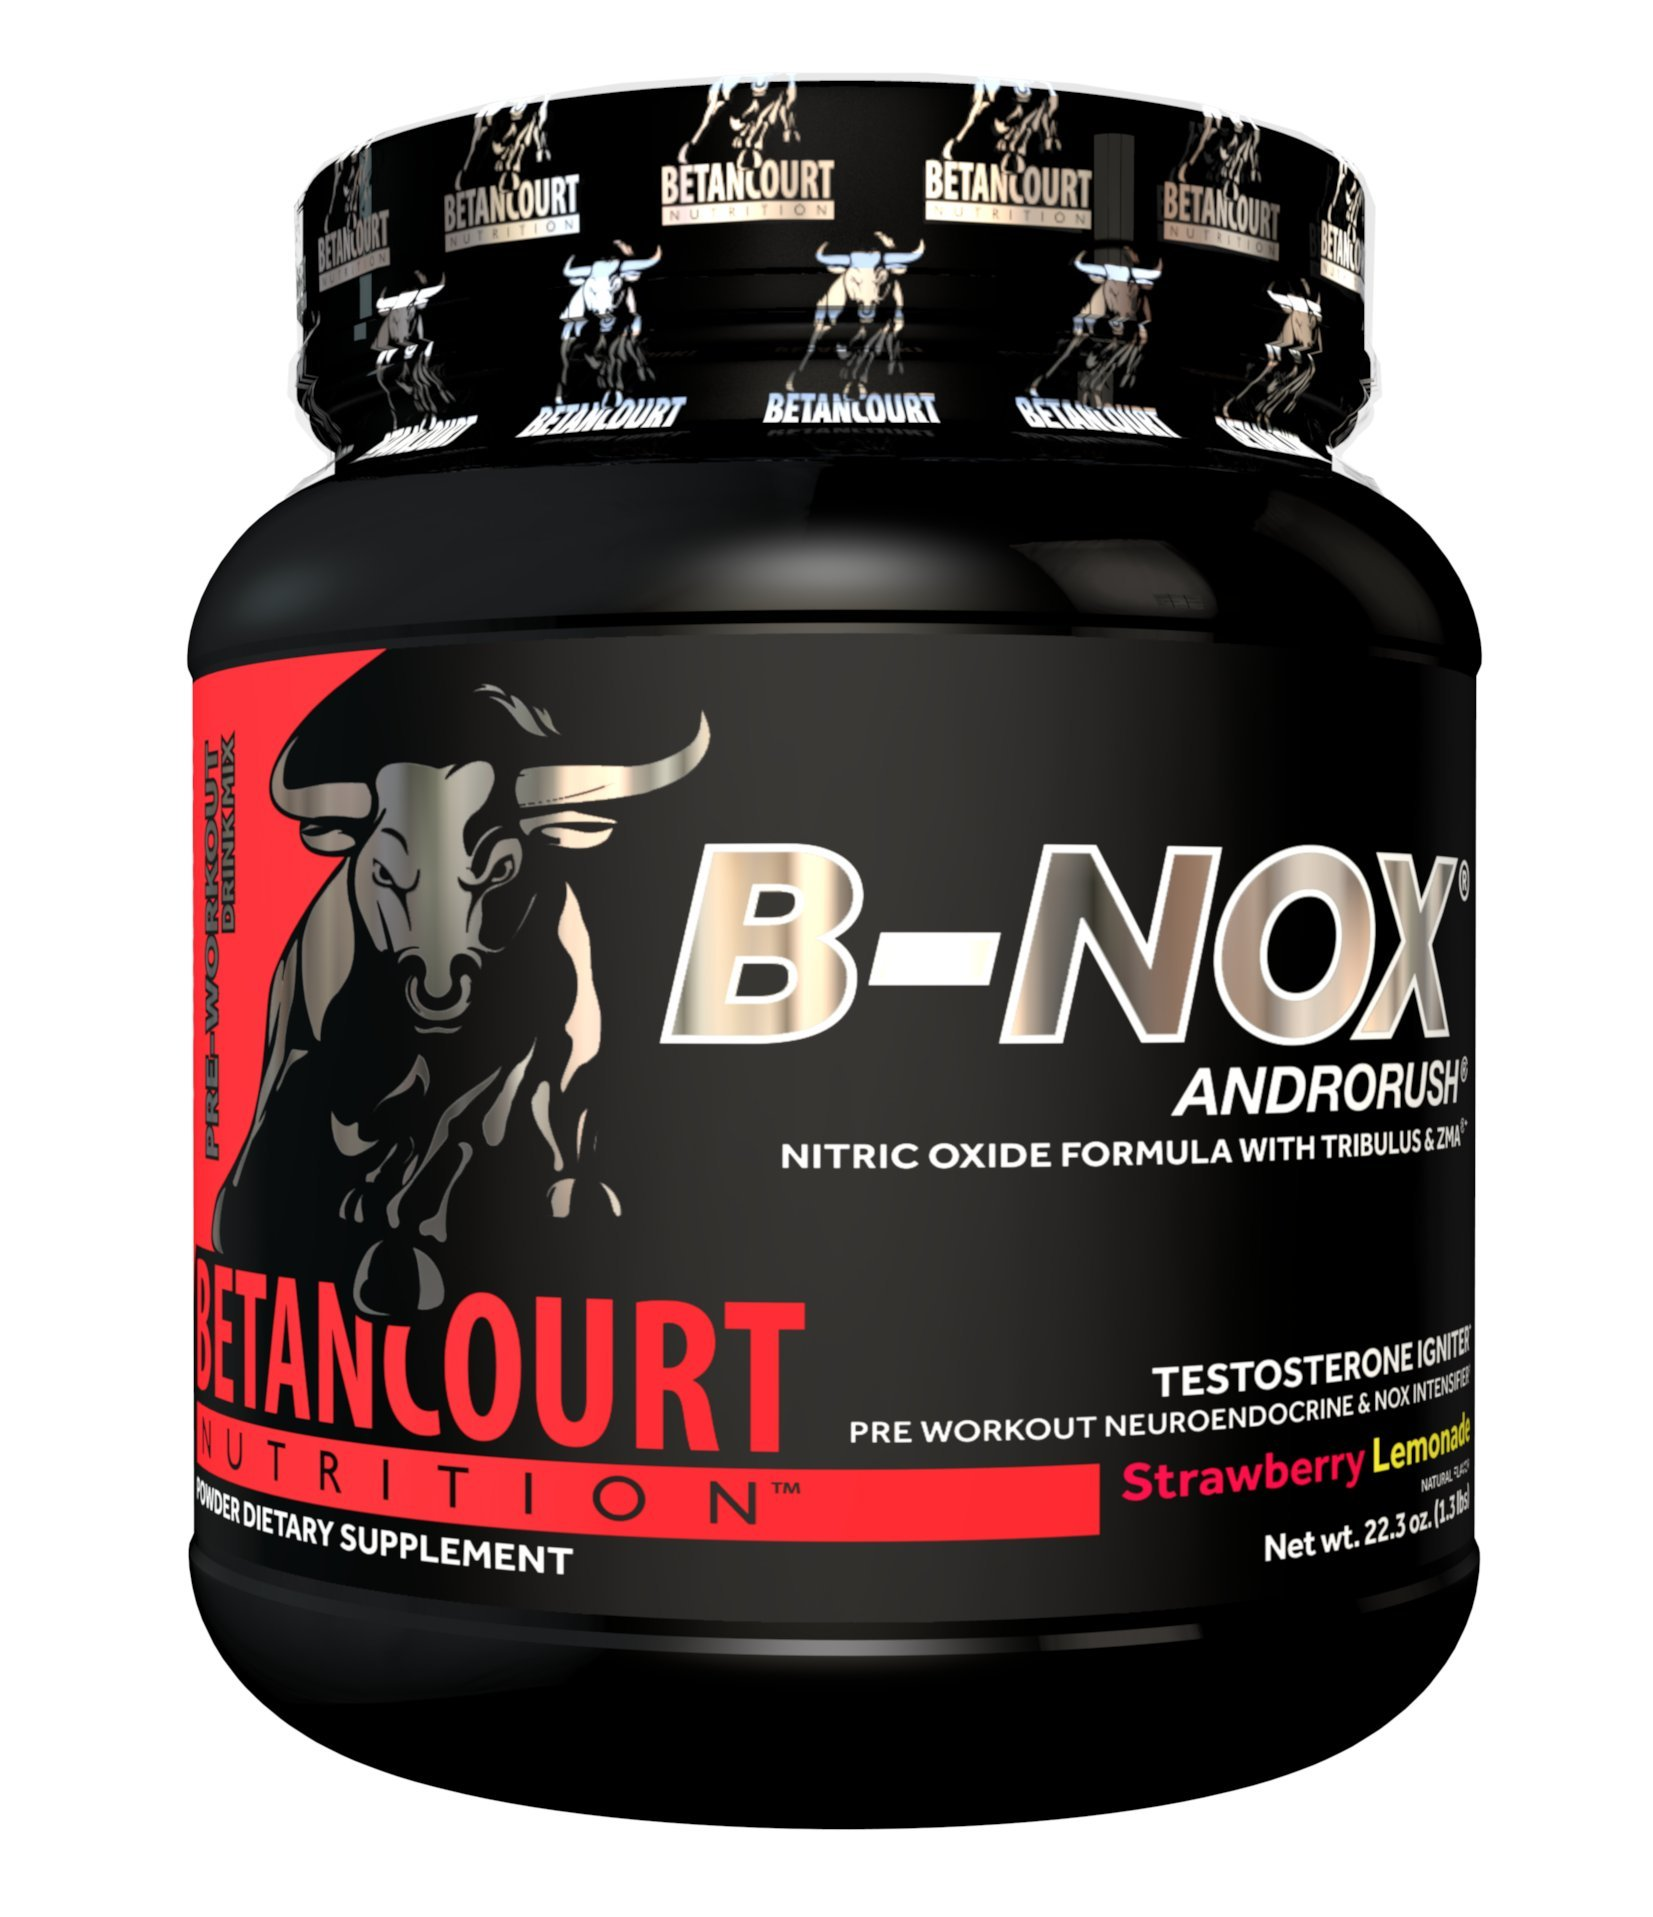 Betancourt Nutrition - B-NOX Androrush, Promotes A Better Pre-Workout By Supporting The Natural Testosterone Response To Exercise, Strawberry Lemonade, 22.3 oz (35 Servings)